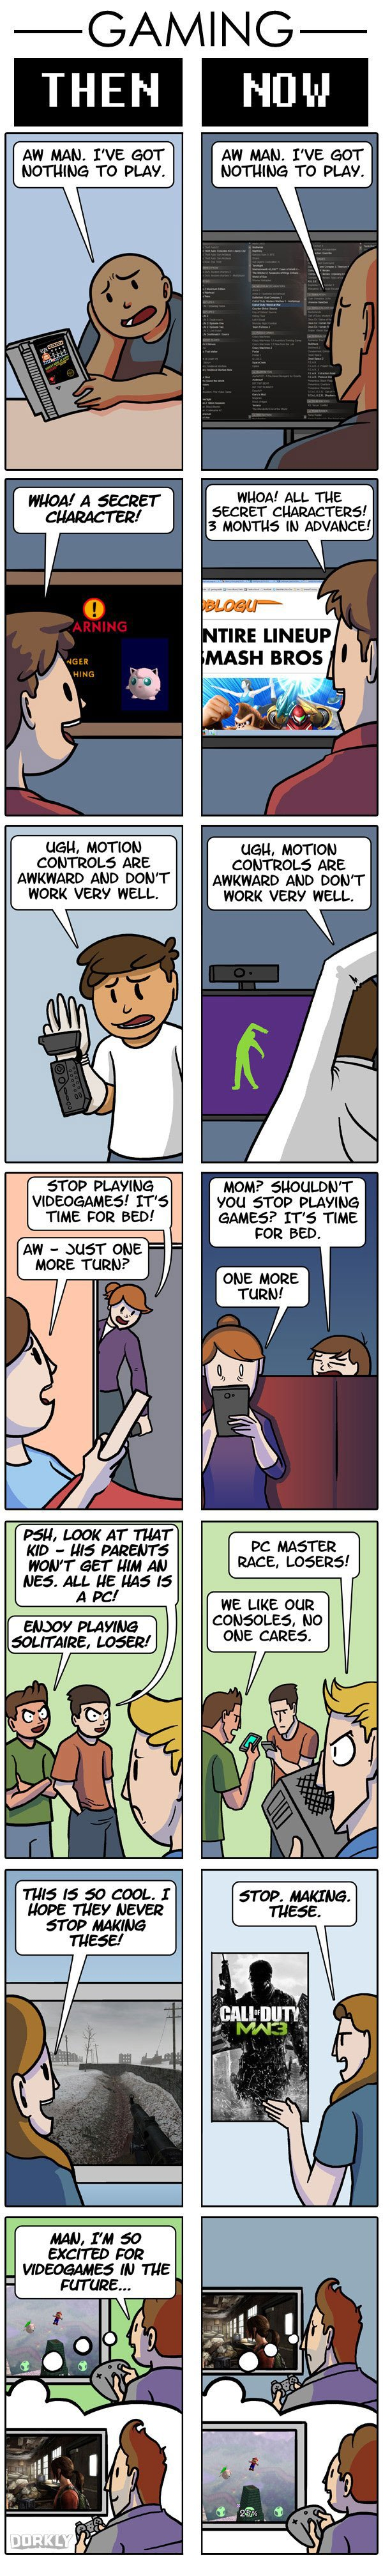 Vamers - Humour - Gaming Then Versus Now - Full Comic by Julia Lepetit and Andrew Bridgman for Dorkly